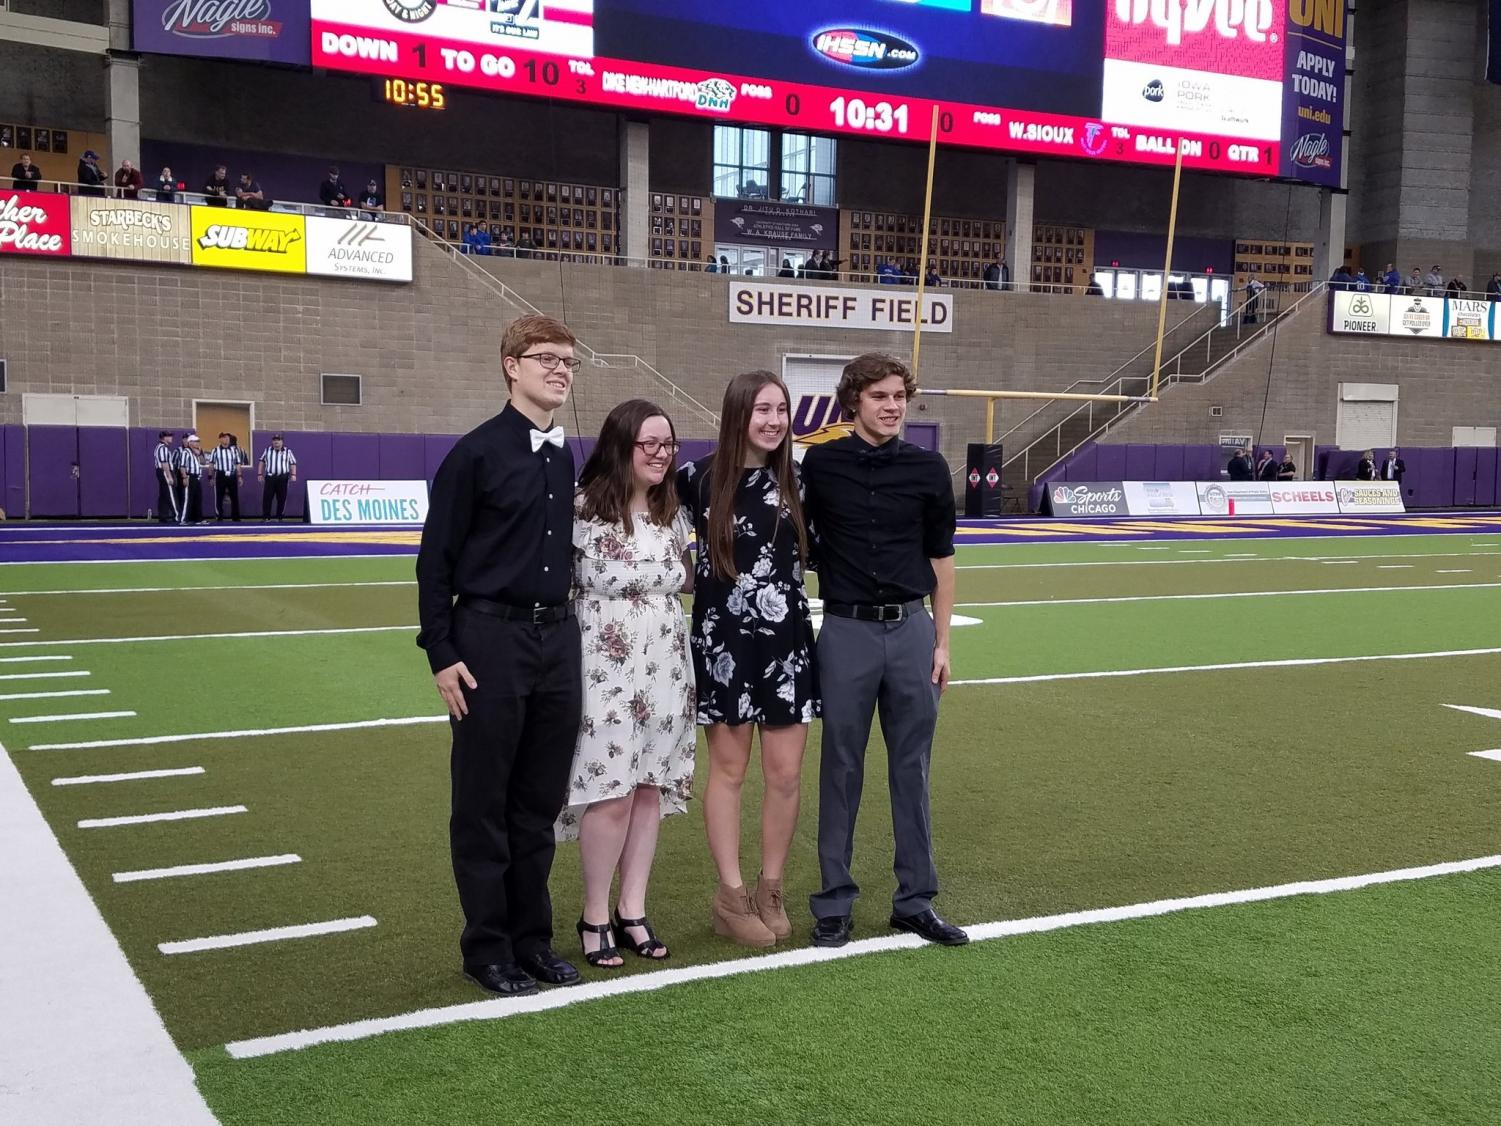 OH SAY CAN YOU SEE - Performing AHS choir members pose for a picture on the field of the UNI Dome. The quartet consisted of Chris Krogh, Ana Muell, Katie Saluk and Bradley Dennis.